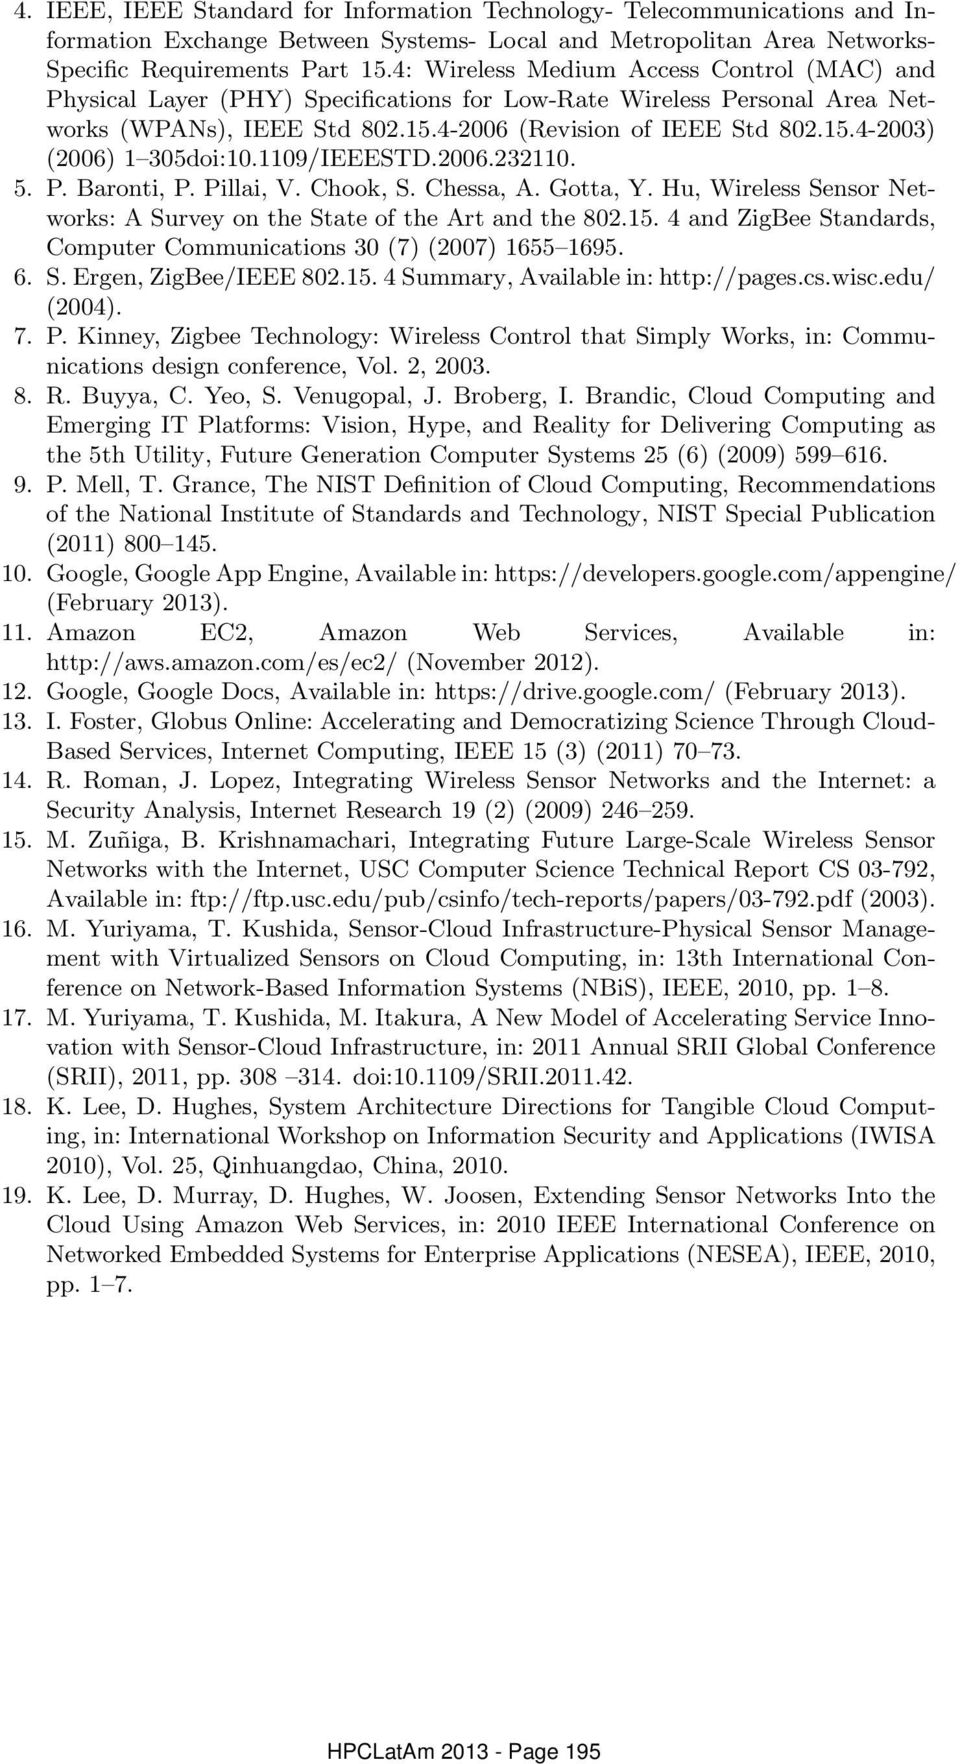 1109/IEEESTD.2006.232110. 5. P. Baronti, P. Pillai, V. Chook, S. Chessa, A. Gotta, Y. Hu, Wireless Sensor Networks: A Survey on the State of the Art and the 802.15.